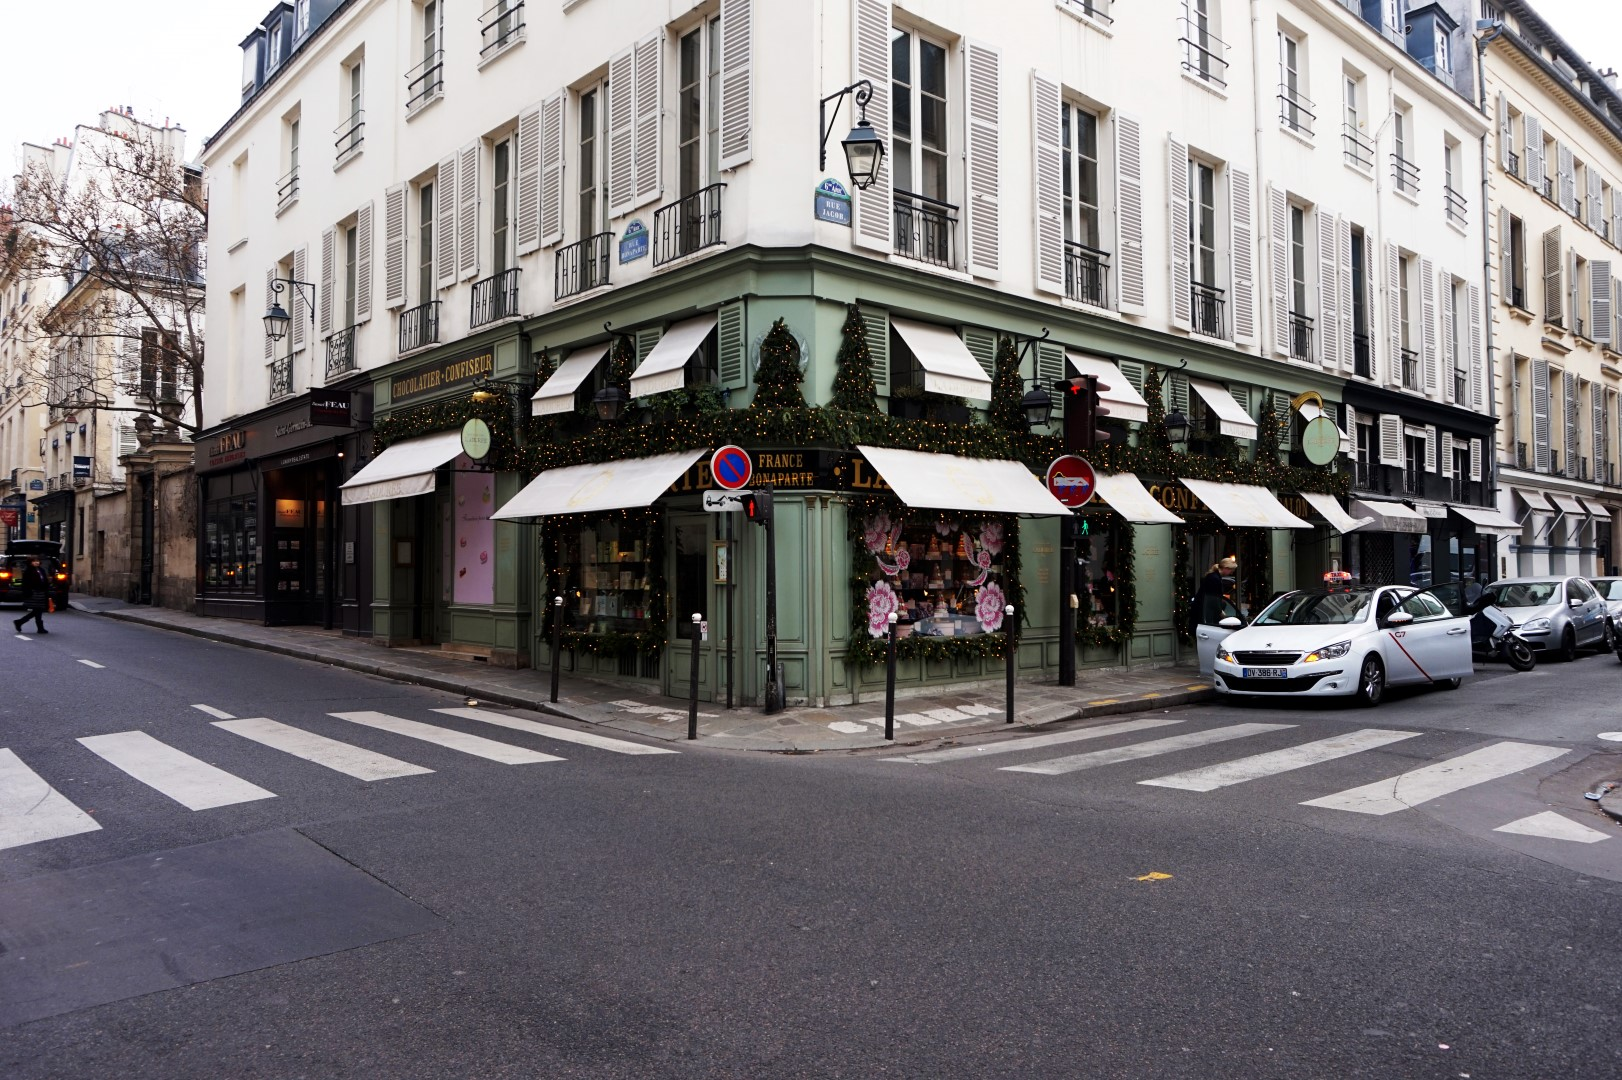 Carrefour rue Bonaparte, rue Jacob - Paris 6e - Ladurée